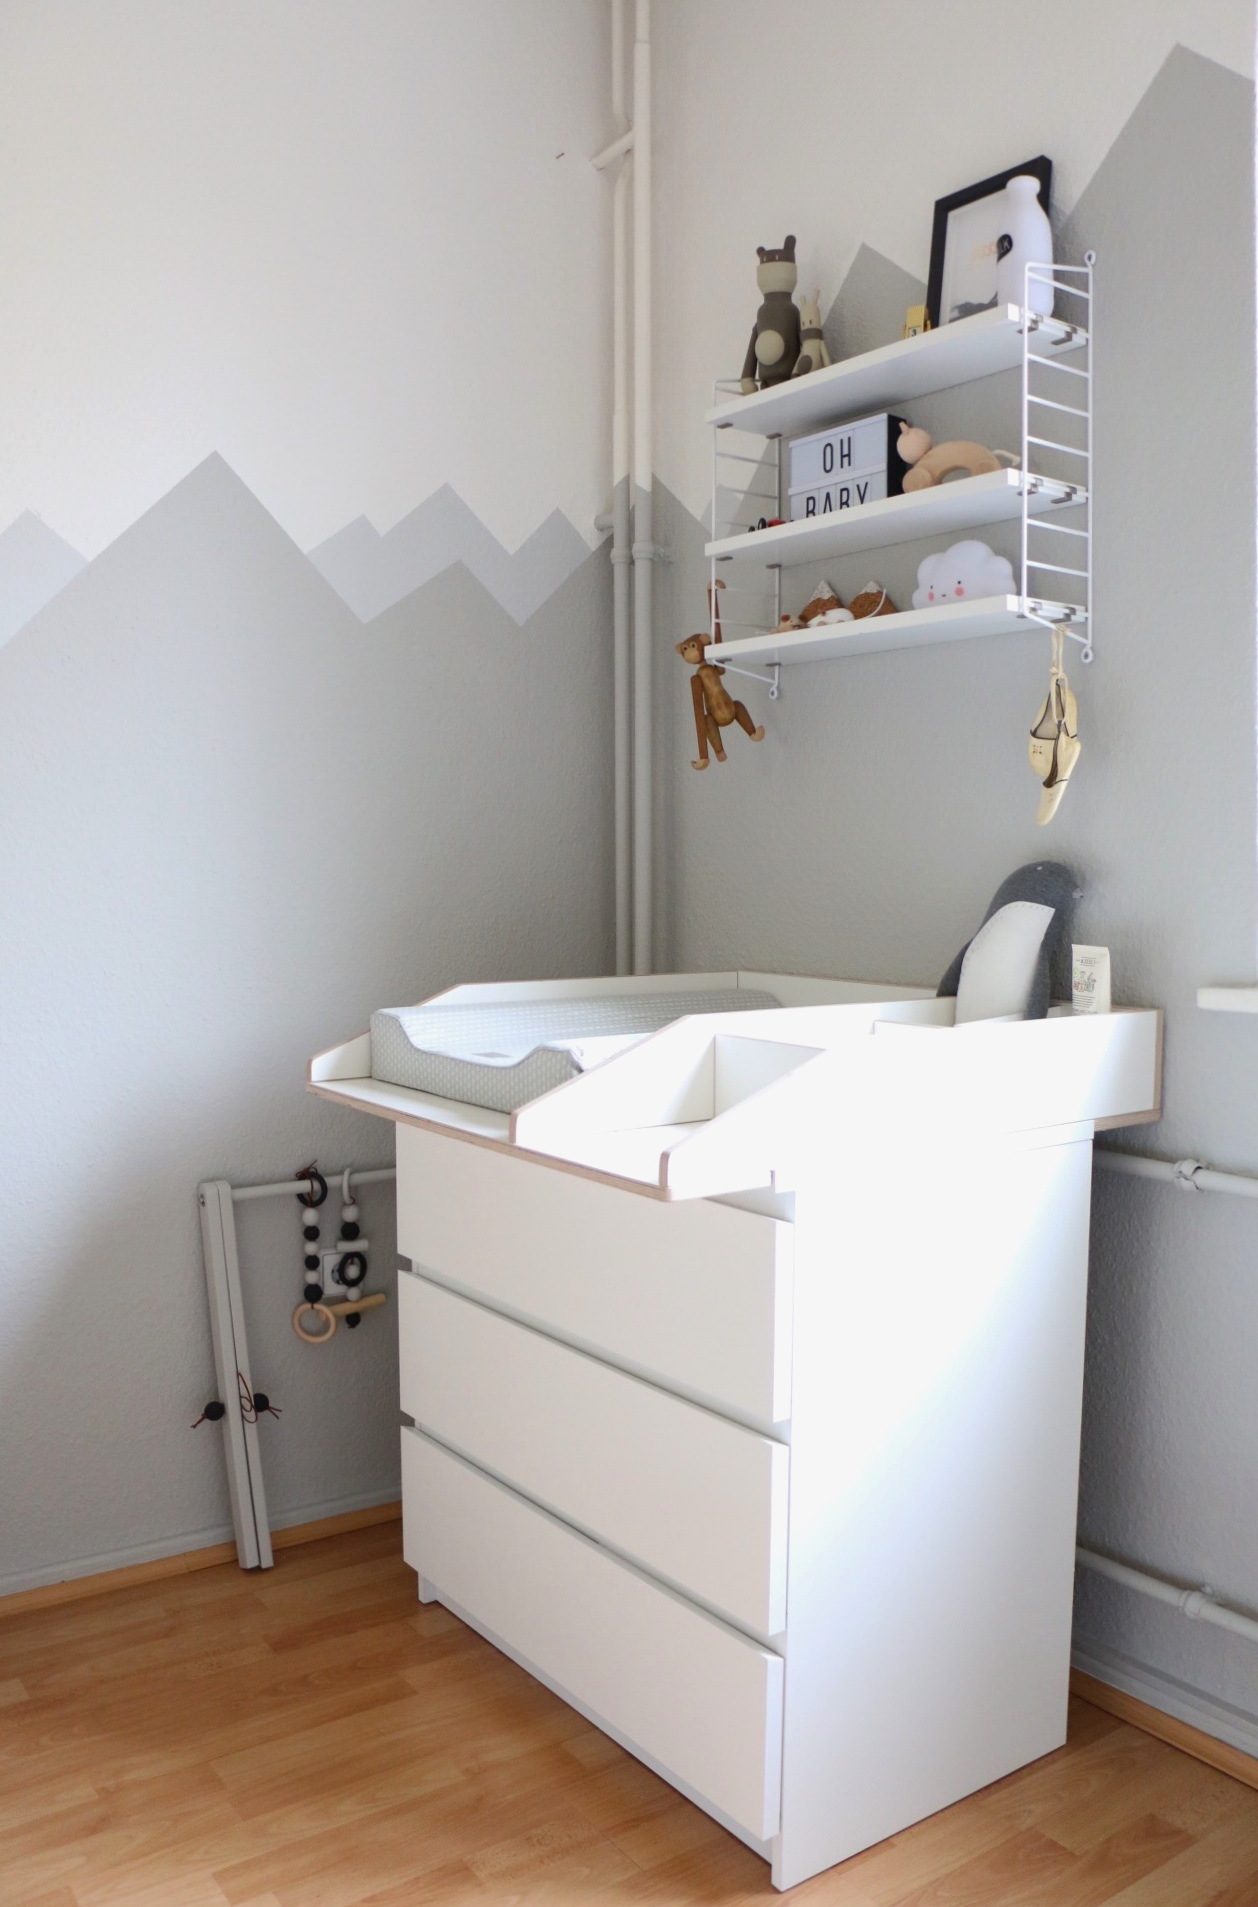 Mountain Nursery Wallpaint Wandgestaltung Im Babyzimmer Eat Blog